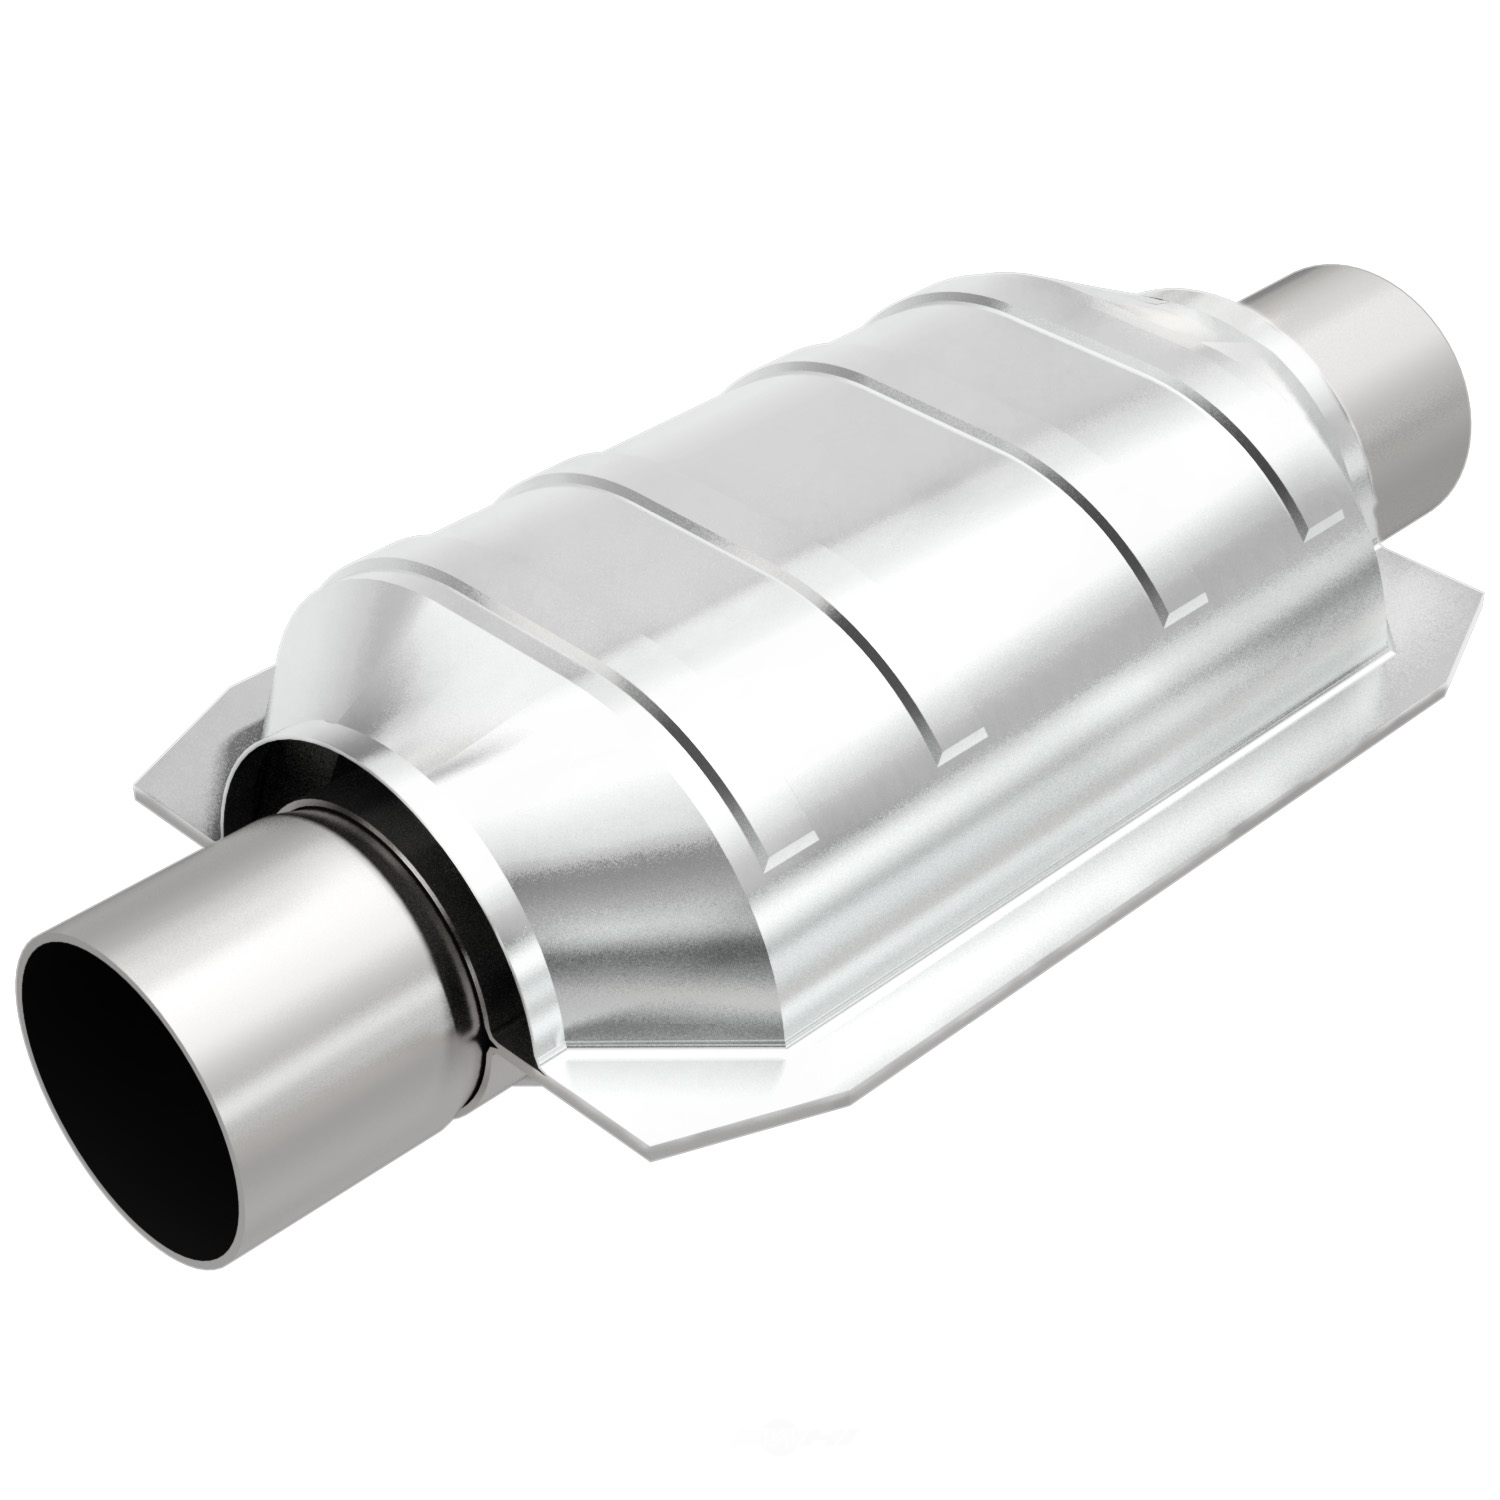 MAGNAFLOW CARB COMPLIANT CONVERTER - 2in. Universal California OBDII Catalytic Converter - MFC 447204